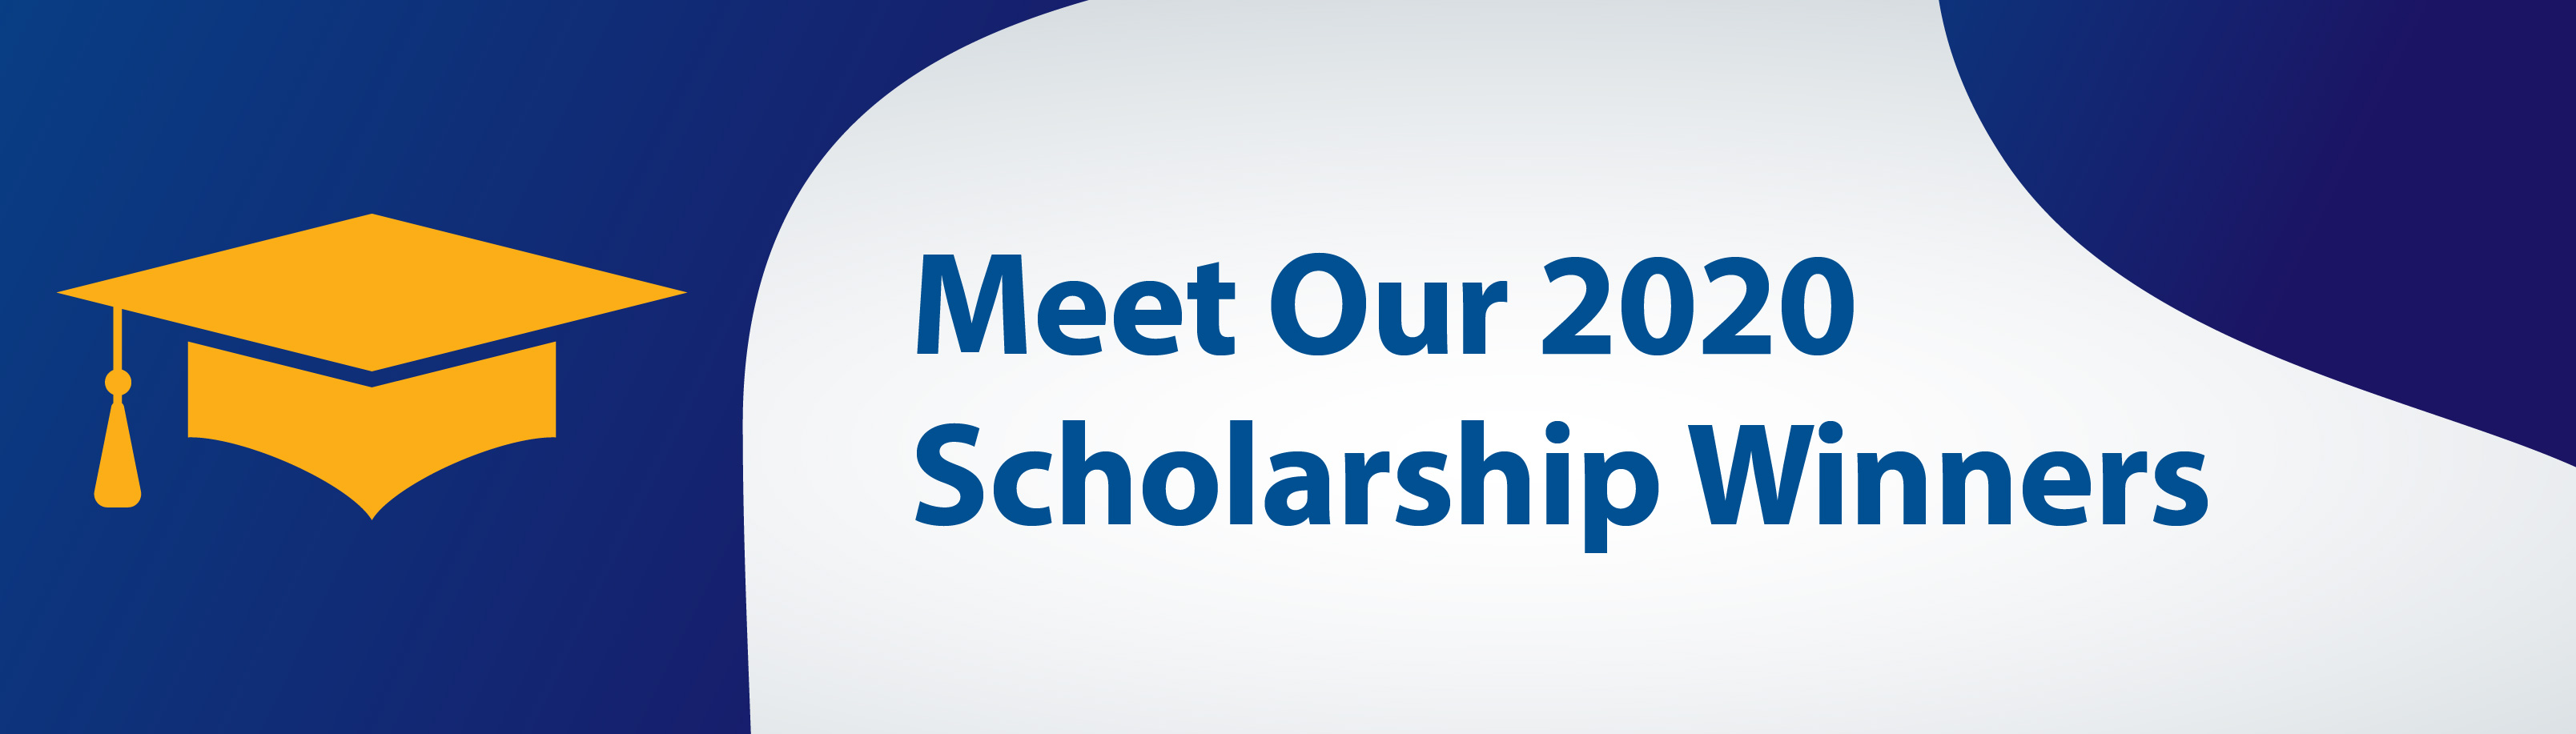 web banner for 2020 scholarship winners